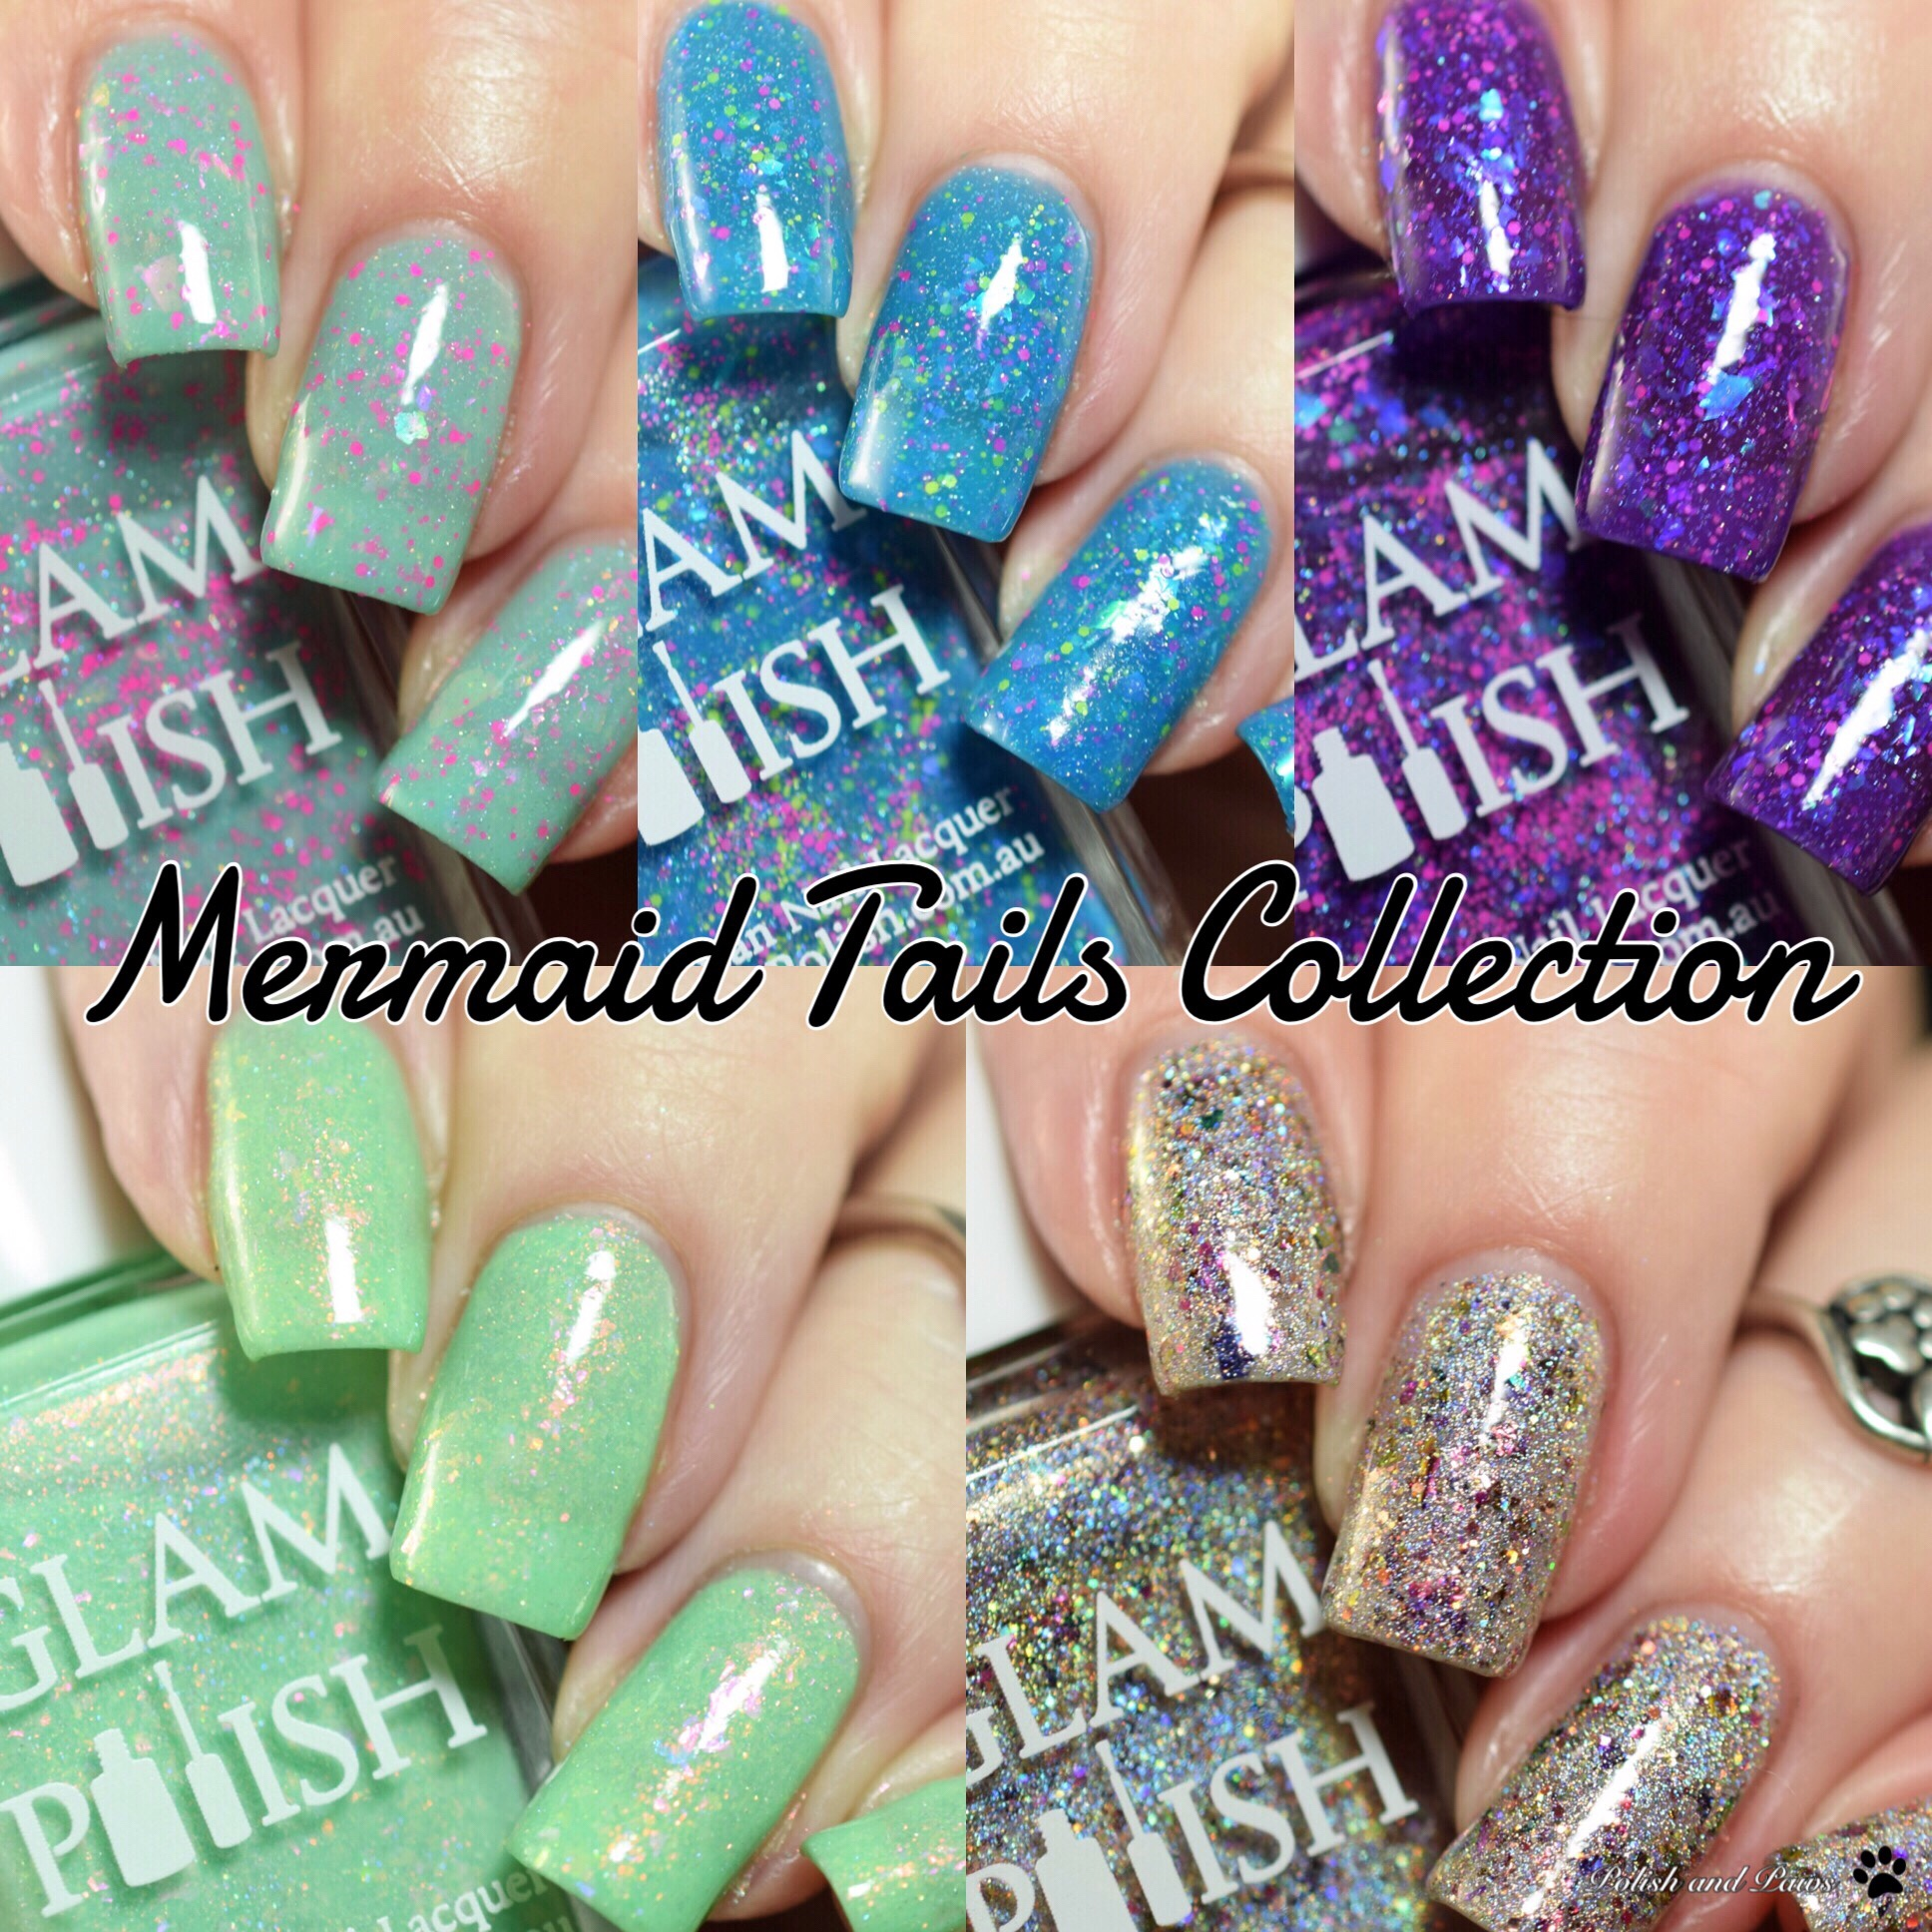 Glam Polish Mermaid Tails Collection LE (partial)